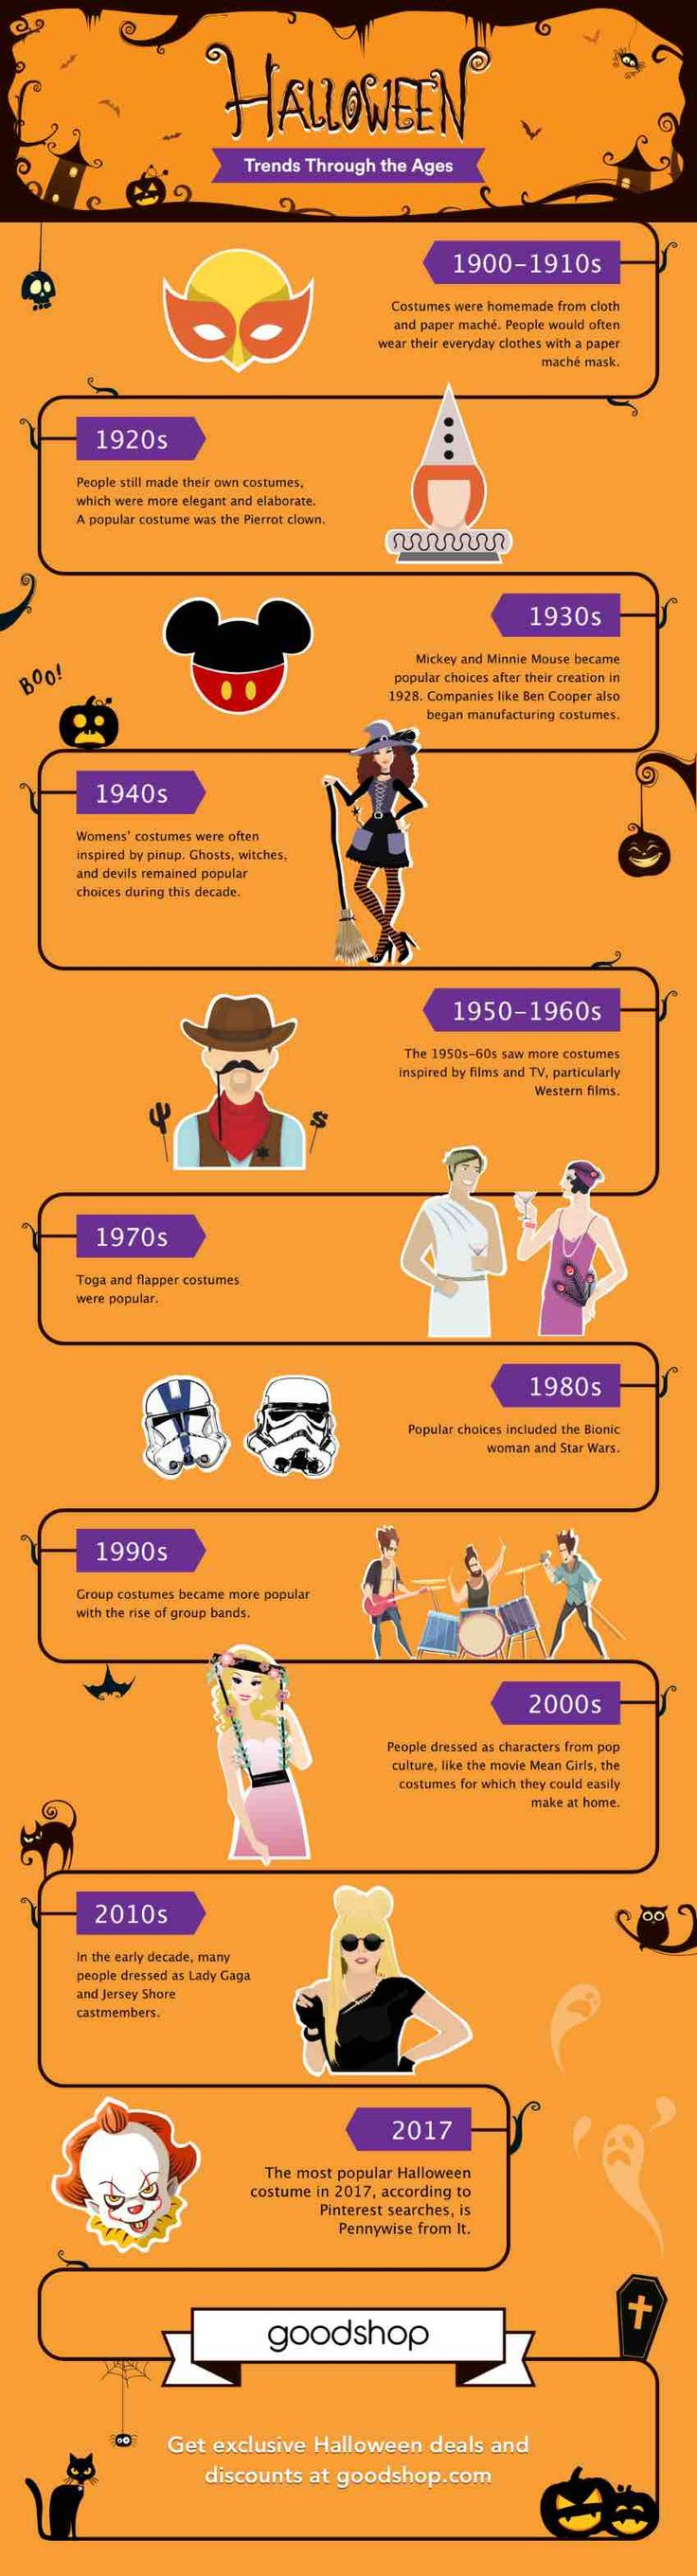 Halloween costumes through the ages from https://blog.goodshop.com/2017/10/25/halloween-costume-trends-ages/  DIY Halloween Costumes, Halloween costumes ideas, Creative Halloween costumes, Easy Halloween costumes, Last minute Halloween costumes, Blonde Halloween costumes, Family Halloween costumes #Halloween #HalloweenCostumes